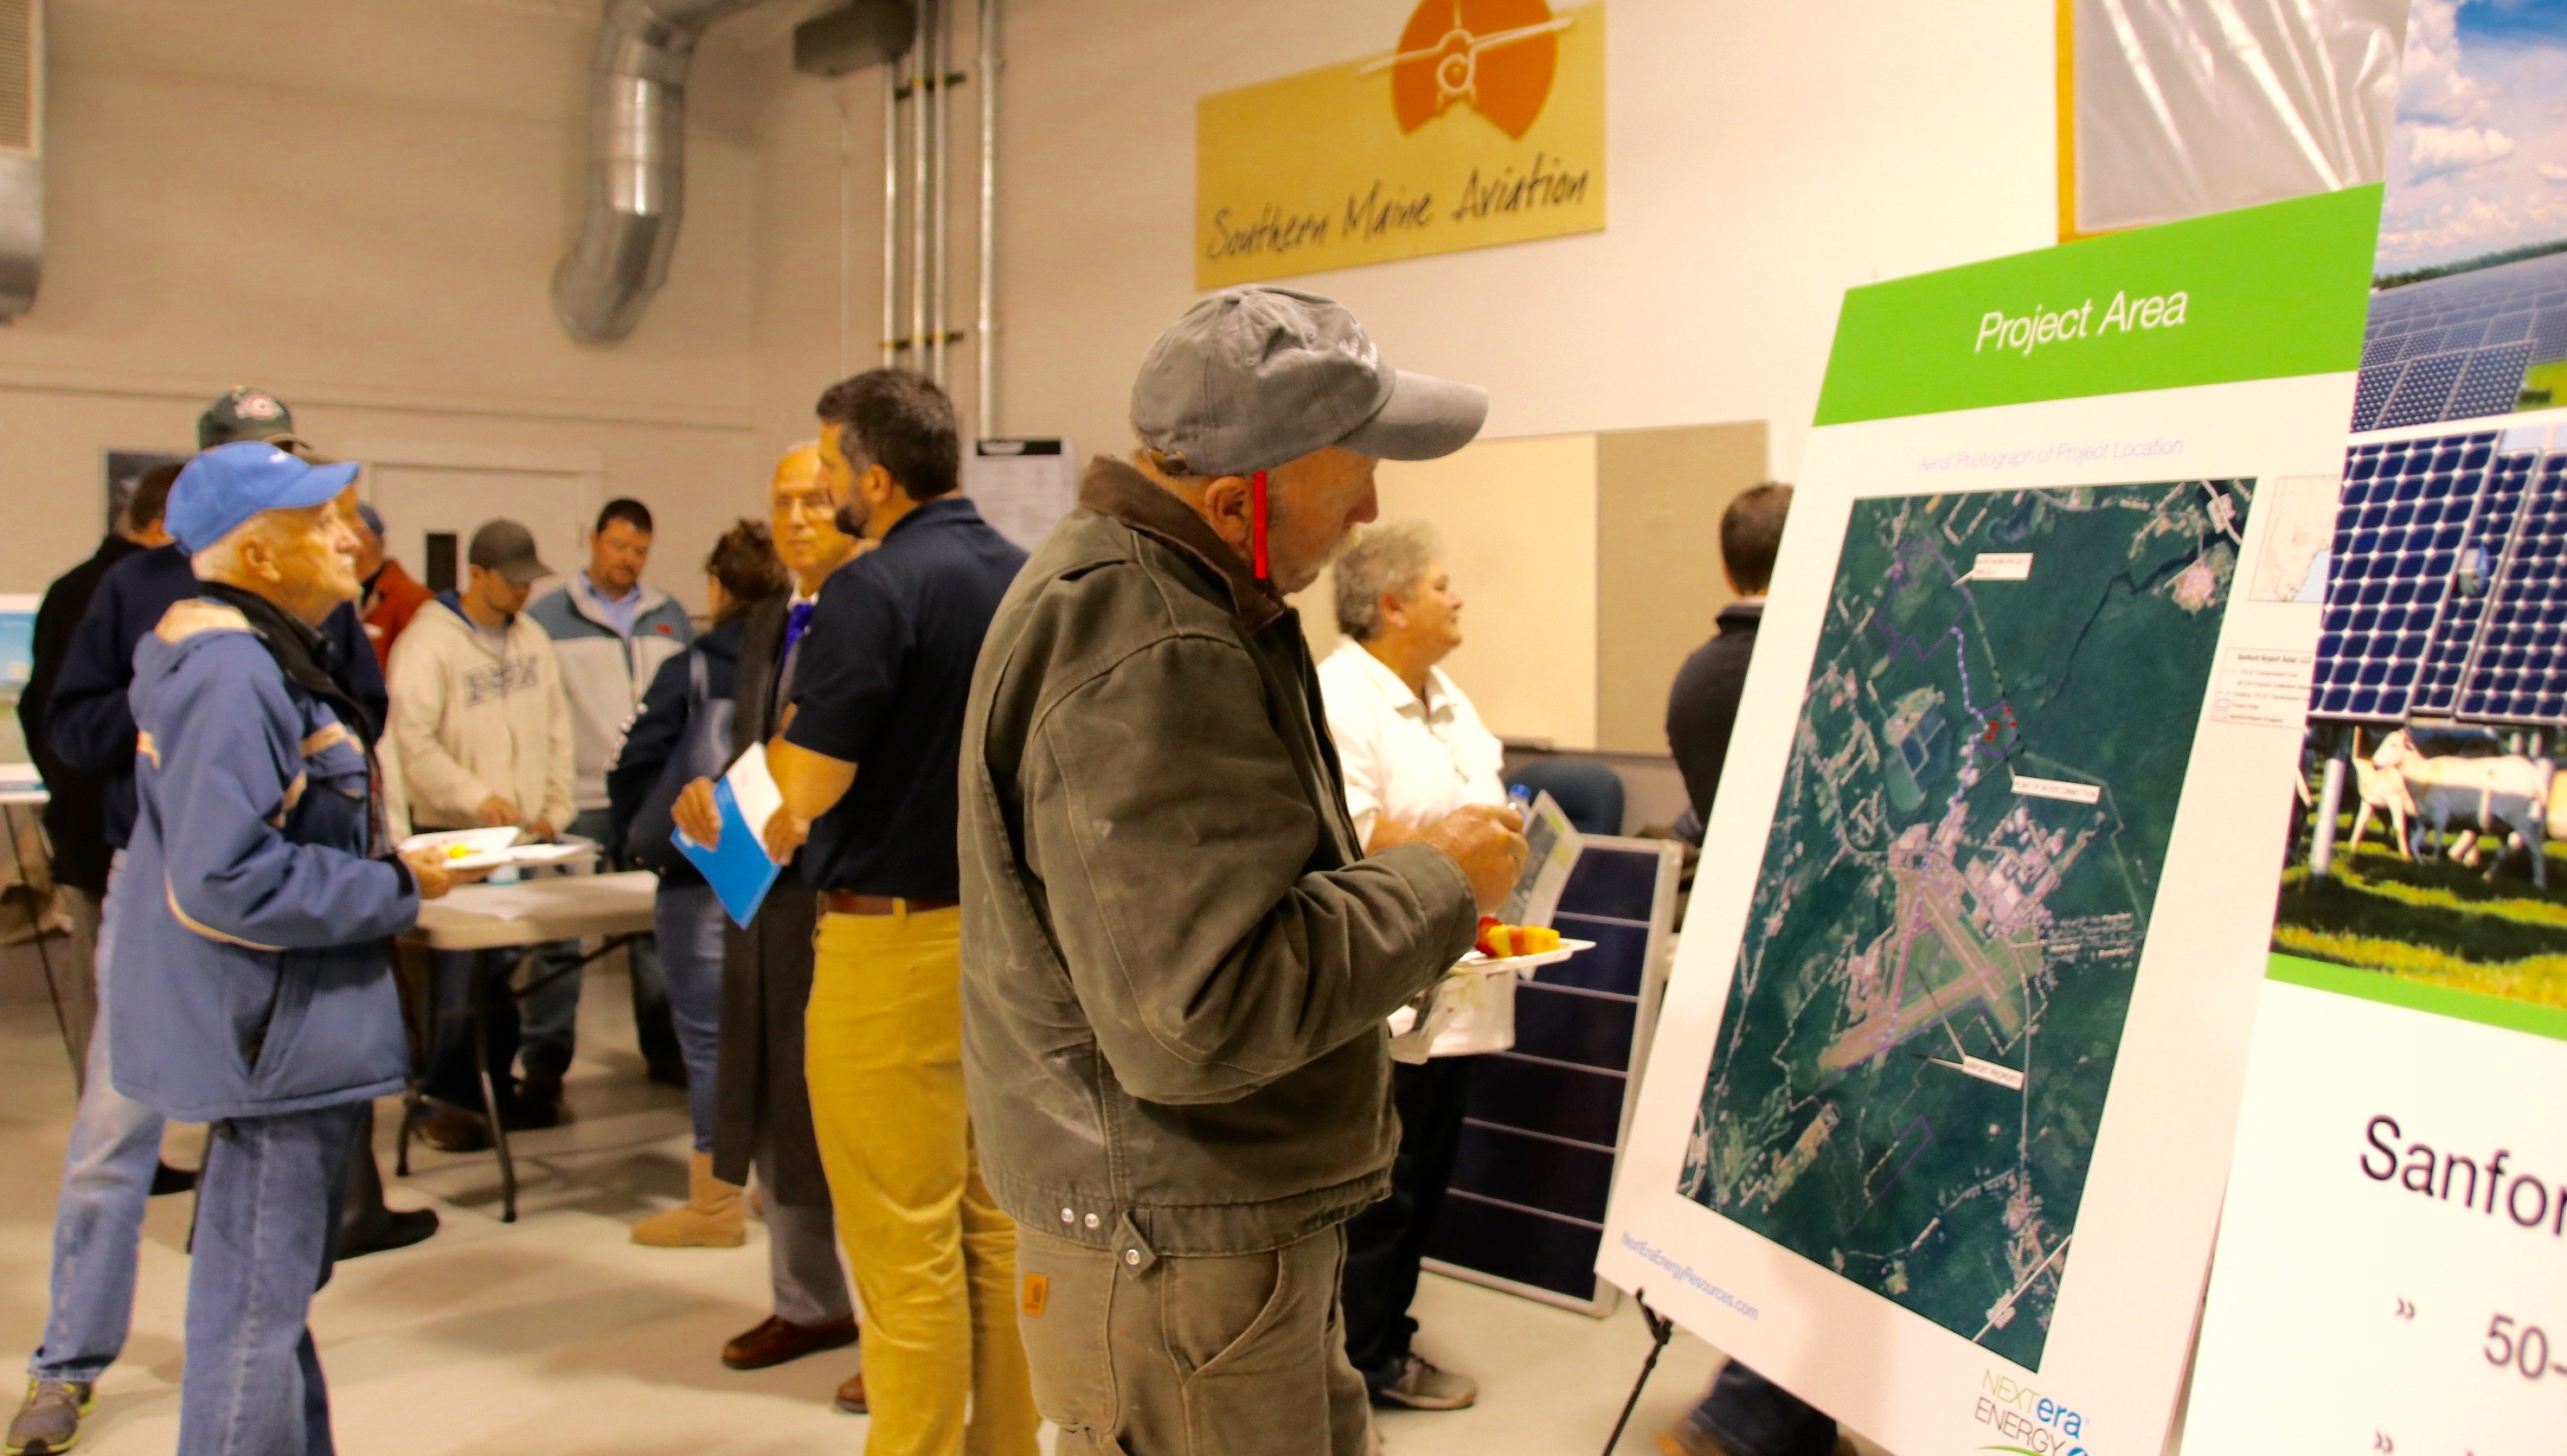 Participants attending an Open House event at Southern Maine Aviation at Sanford Seacoast Regional Airport on Tuesday checked out plans for NextEra's $69 million solar farm. The company plans to begin construction in 2018 with a view to begin generating power by 2019. TAMMY WELLS/Journal Tribune